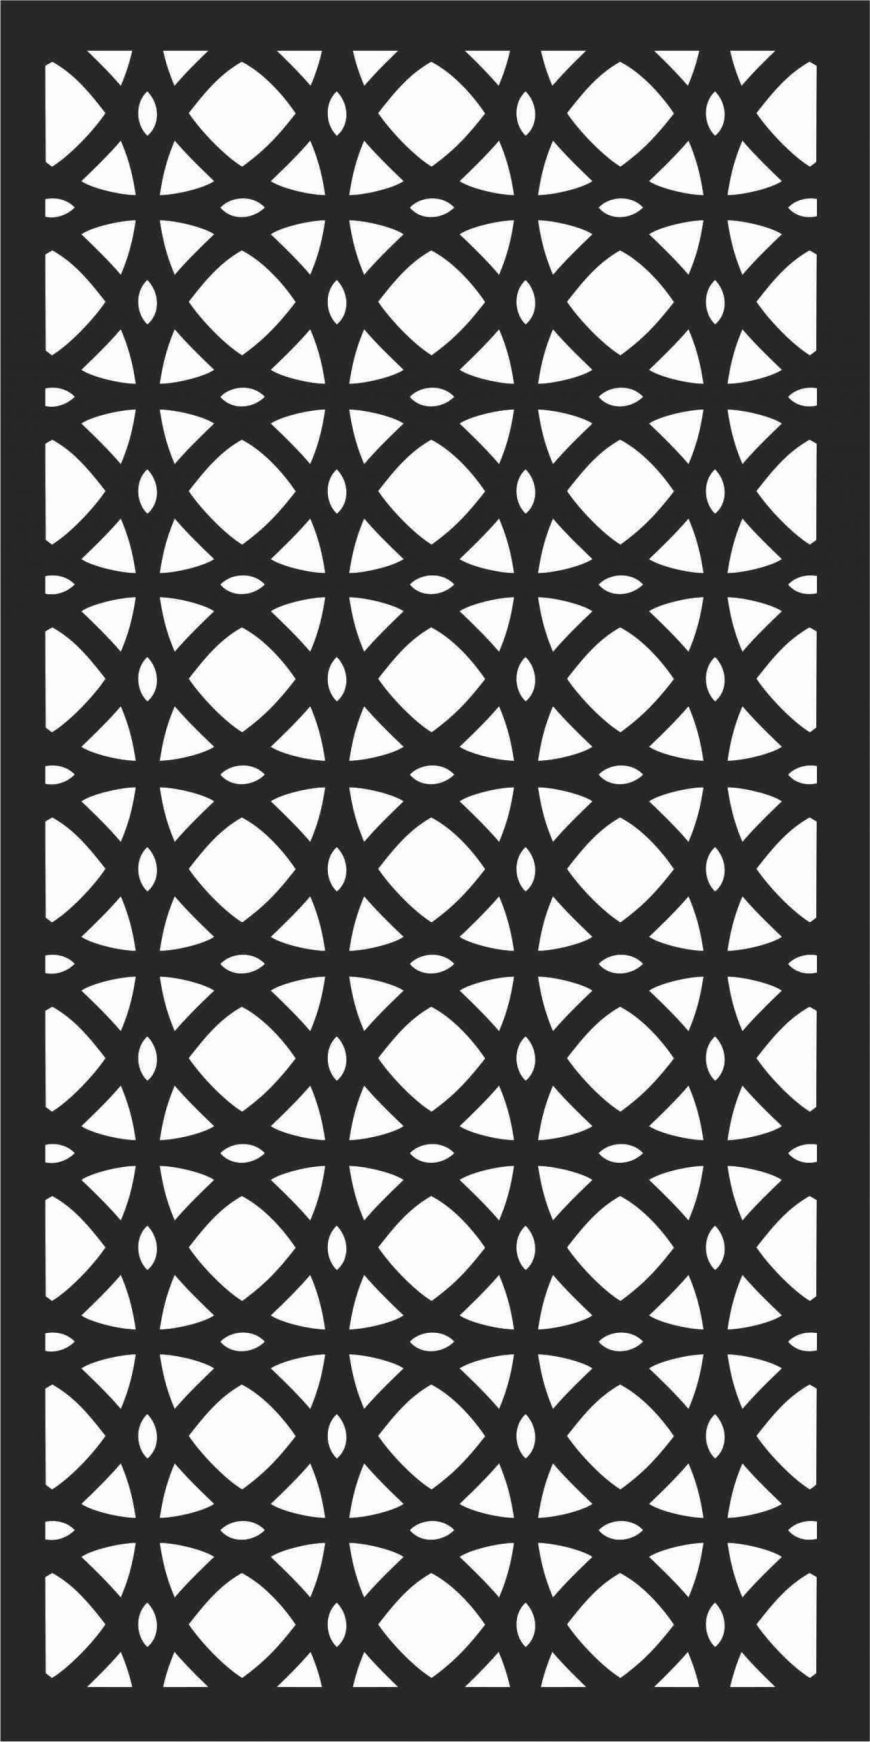 Decorative Screen Patterns For Laser Cutting 182 Free DXF File